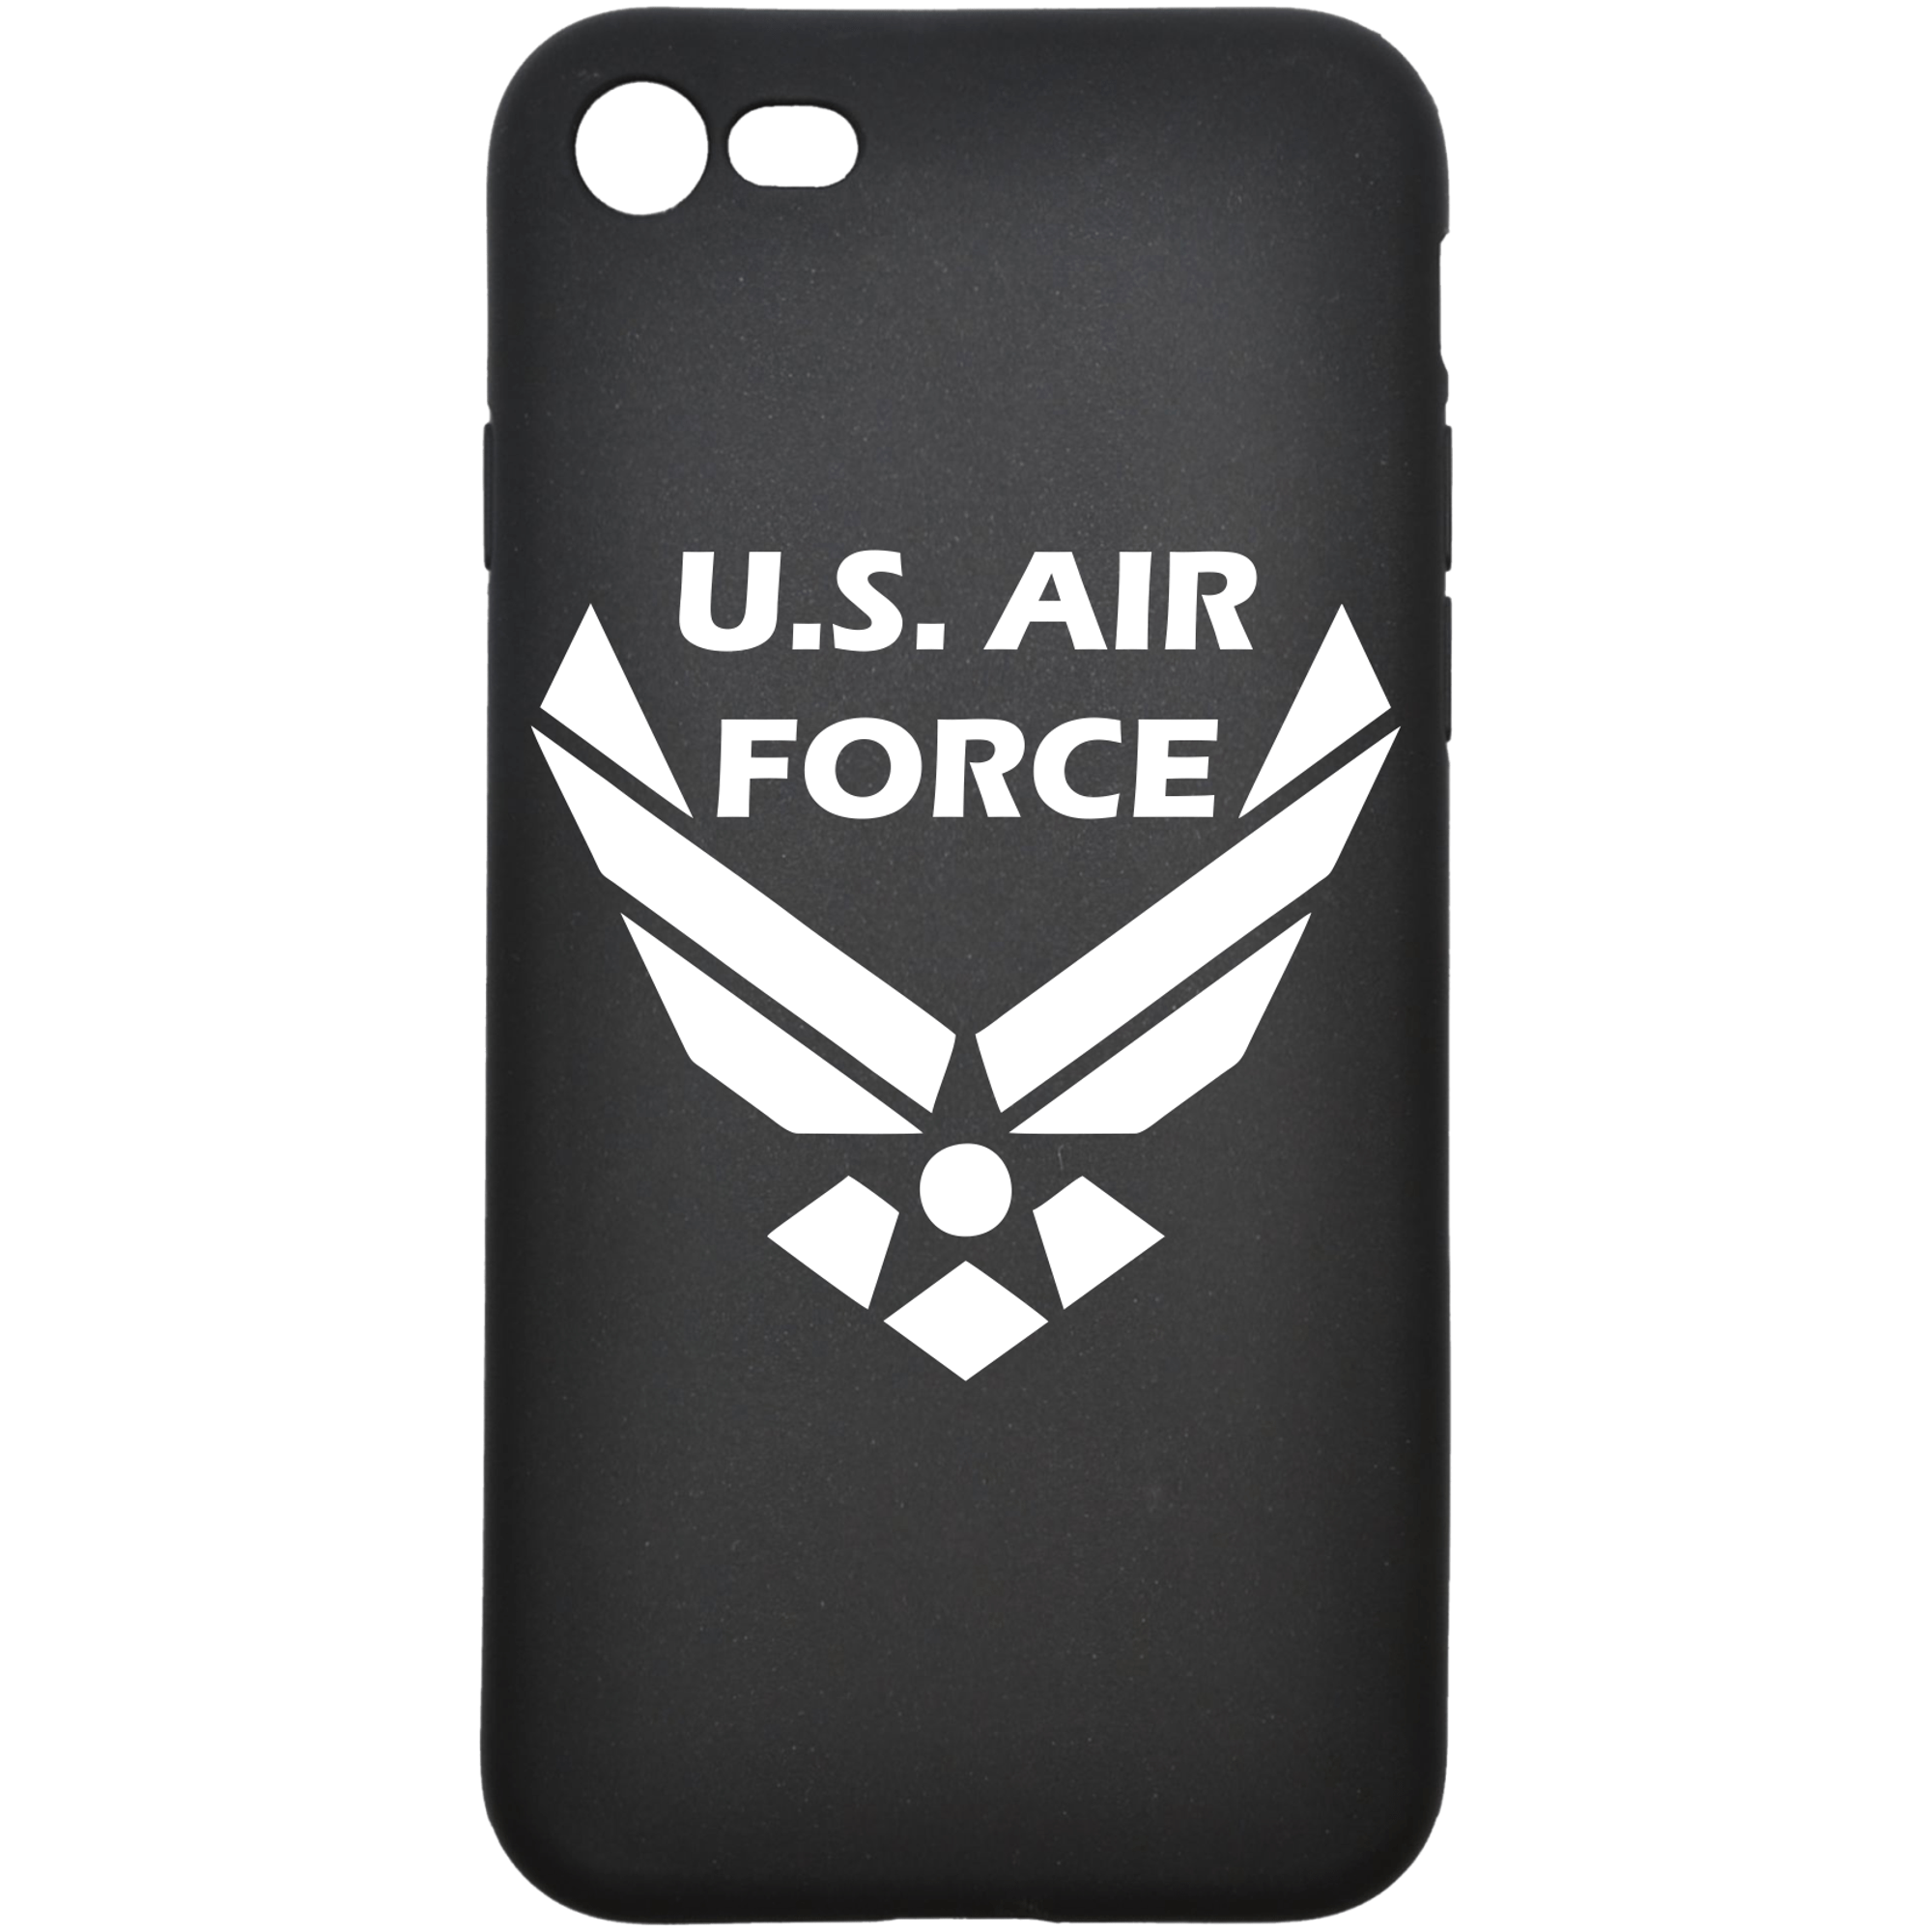 US Air Force Emblem - Smartphone Case - Choose Your Phone